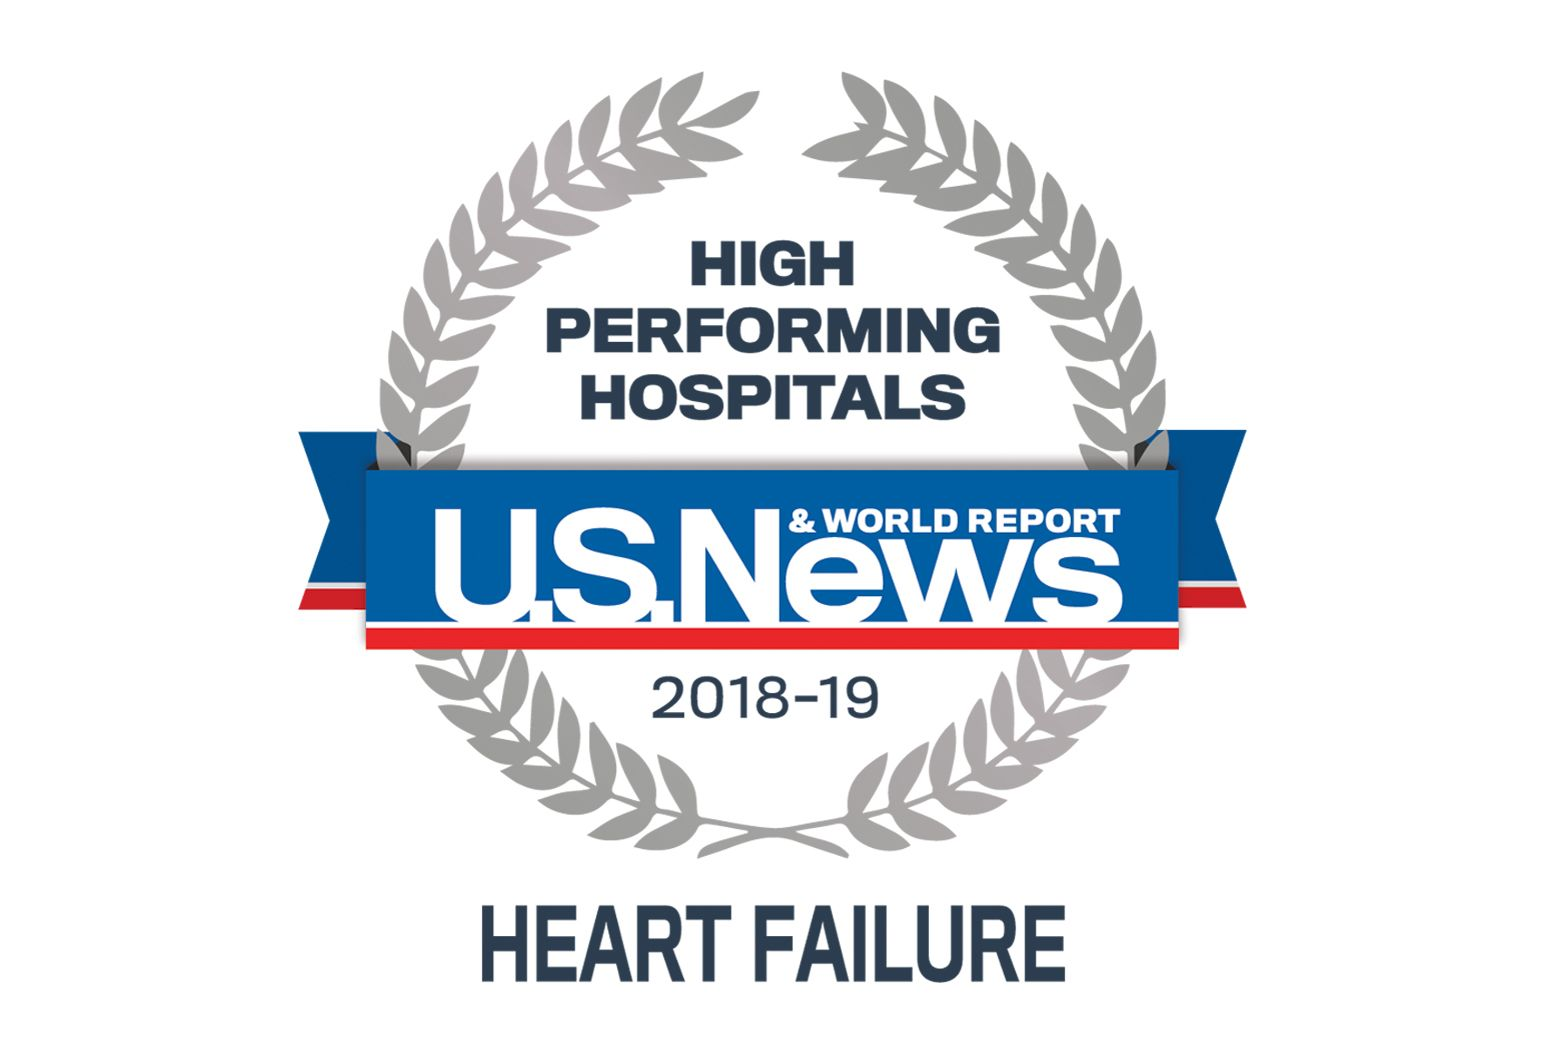 US News badge indicating high performing hospital in heart failure